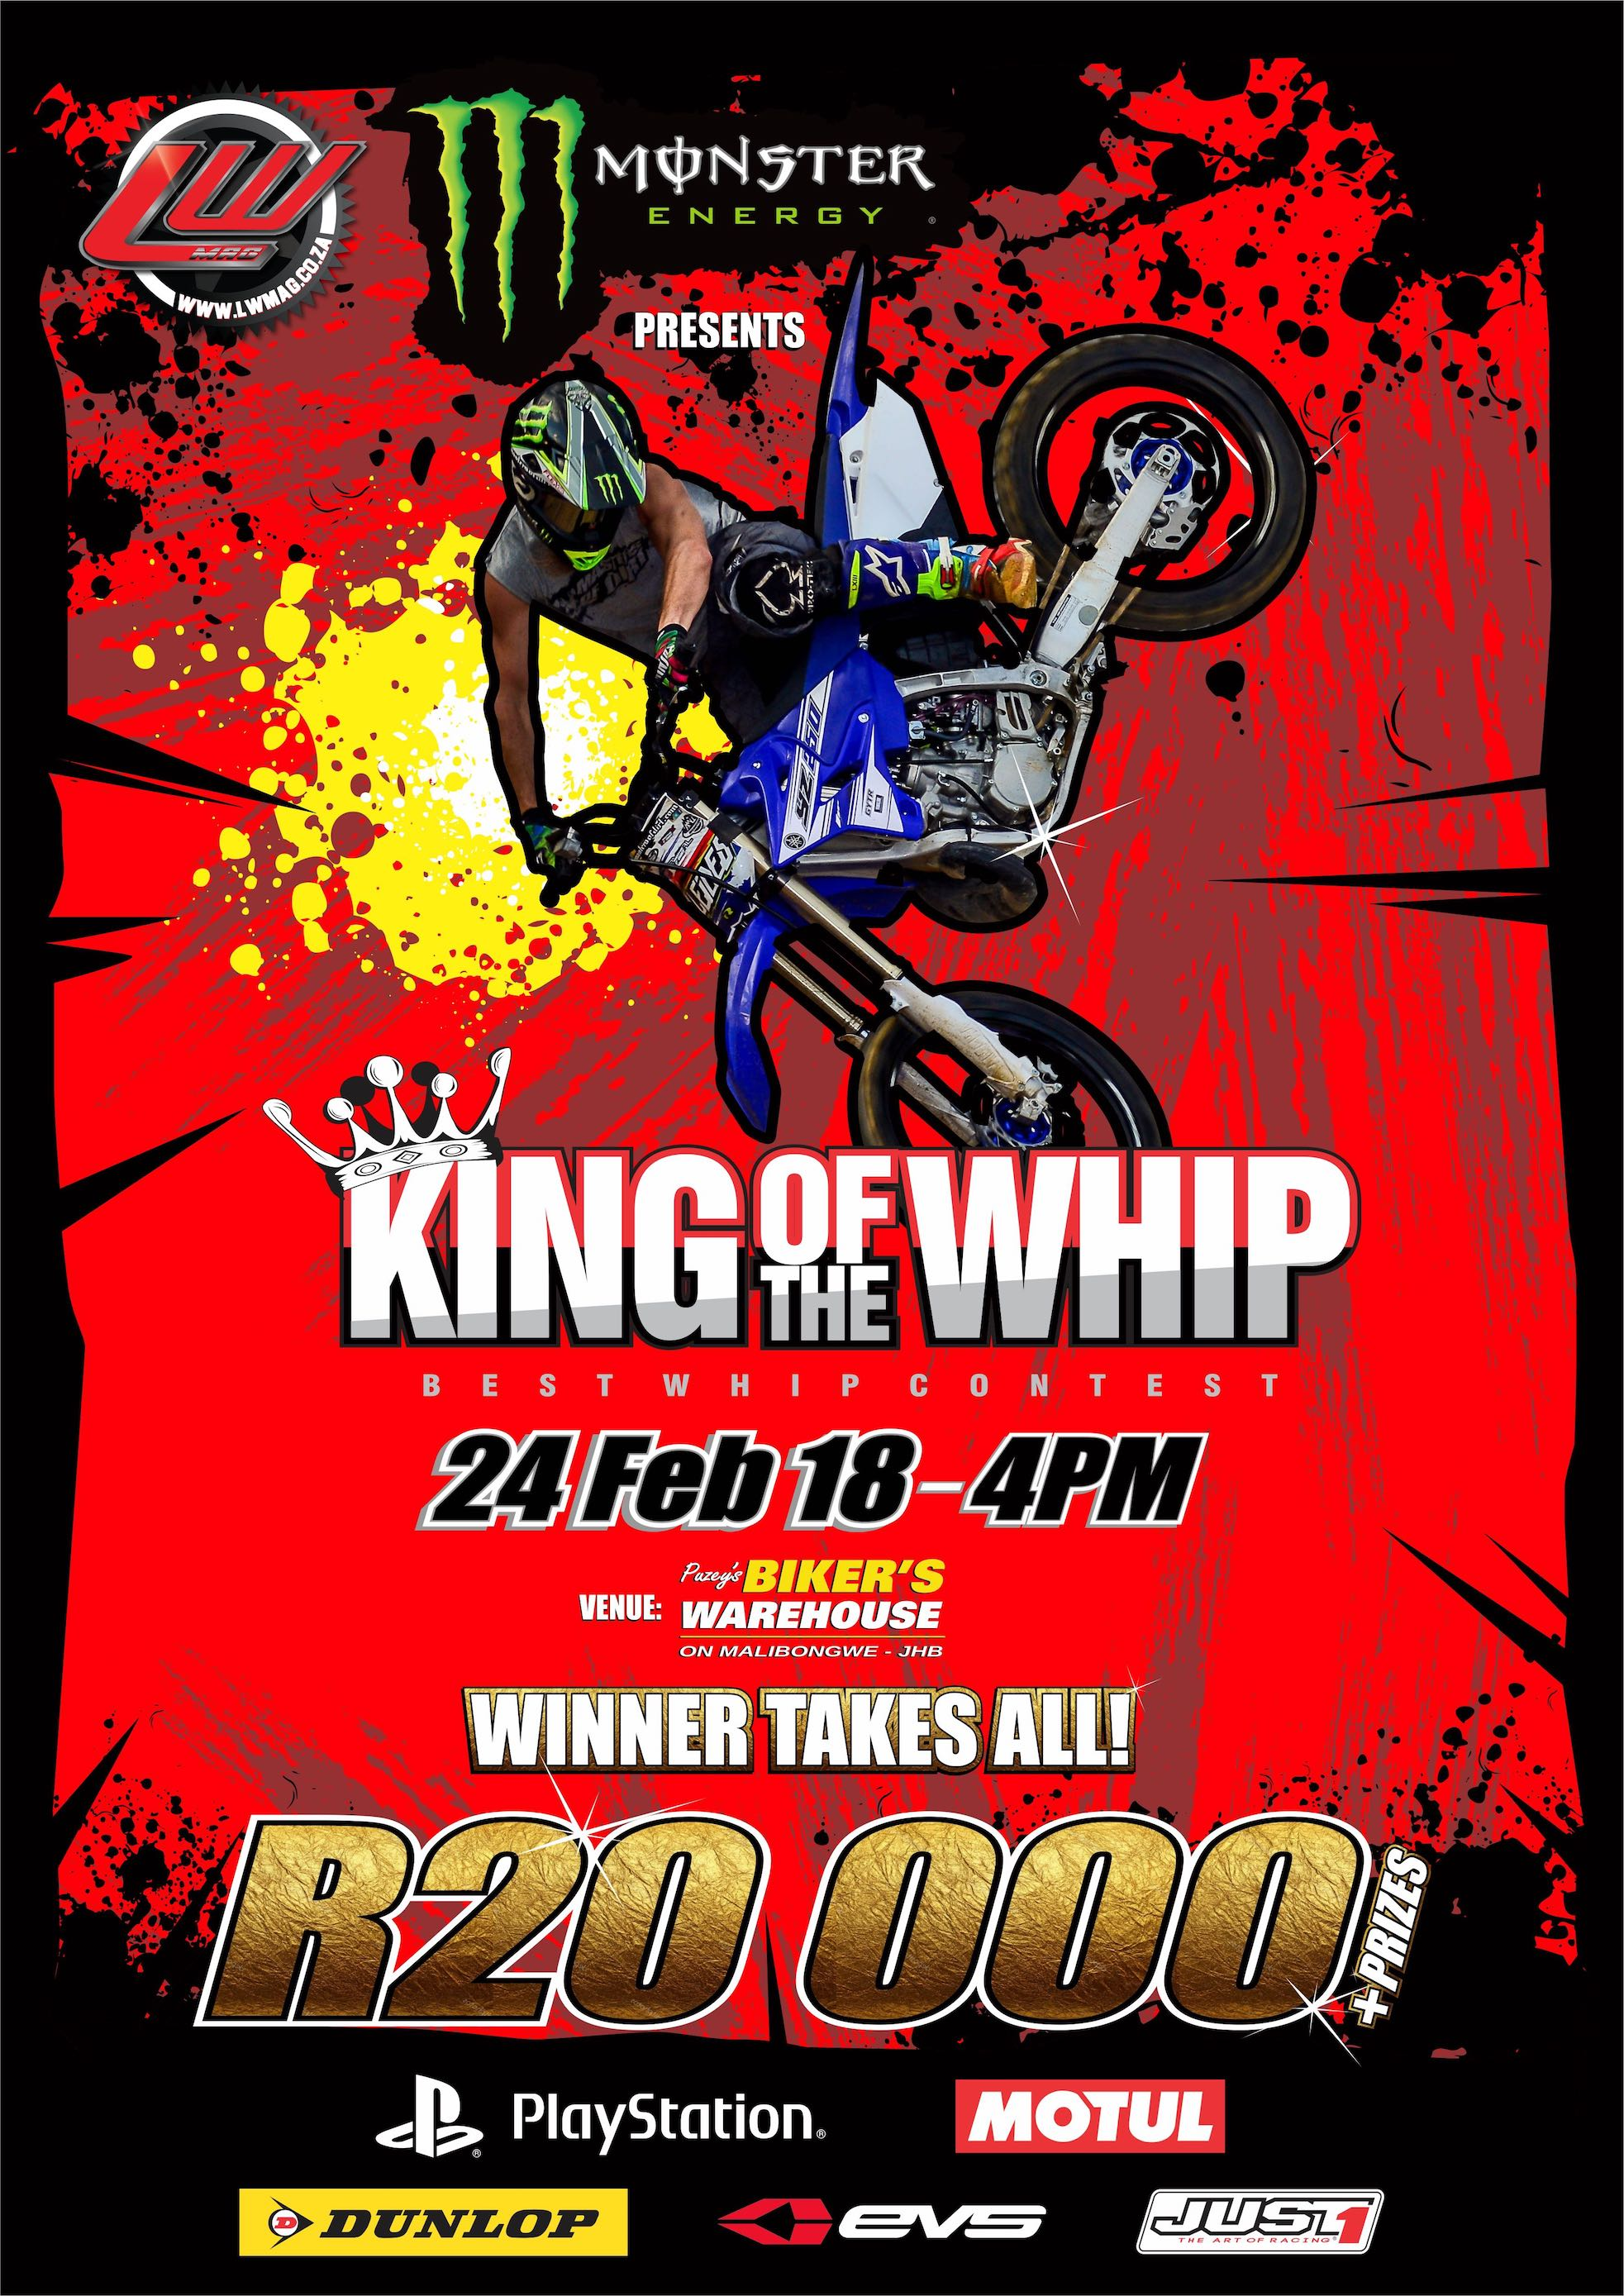 Details from the 2018 King of the Whip motocross and freestyle motocross best whip contest